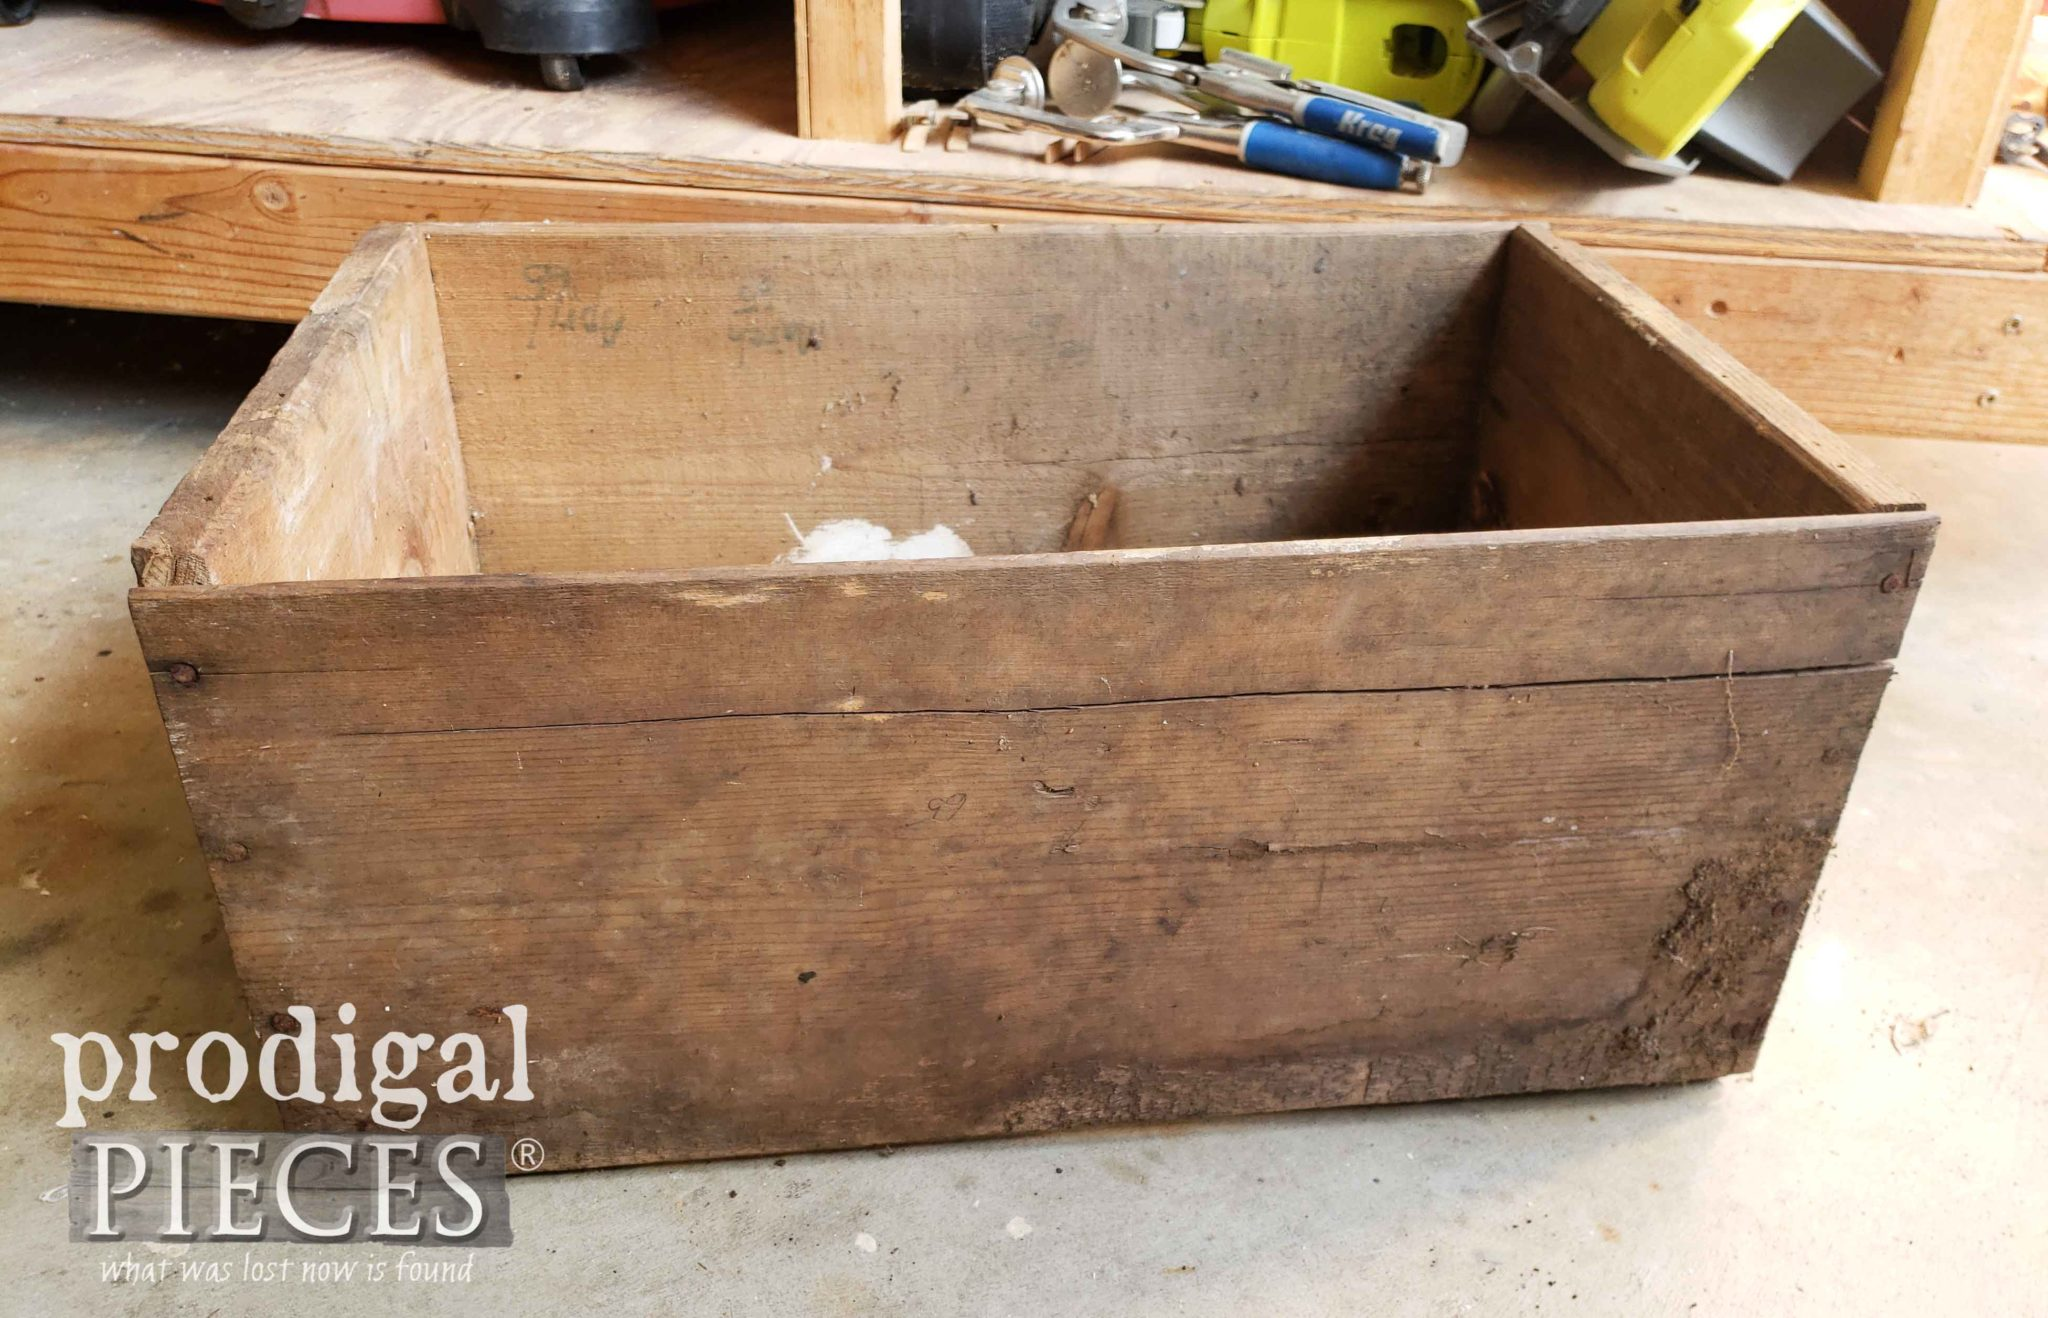 Antique Crate Before Upcycling | prodigalpieces.com